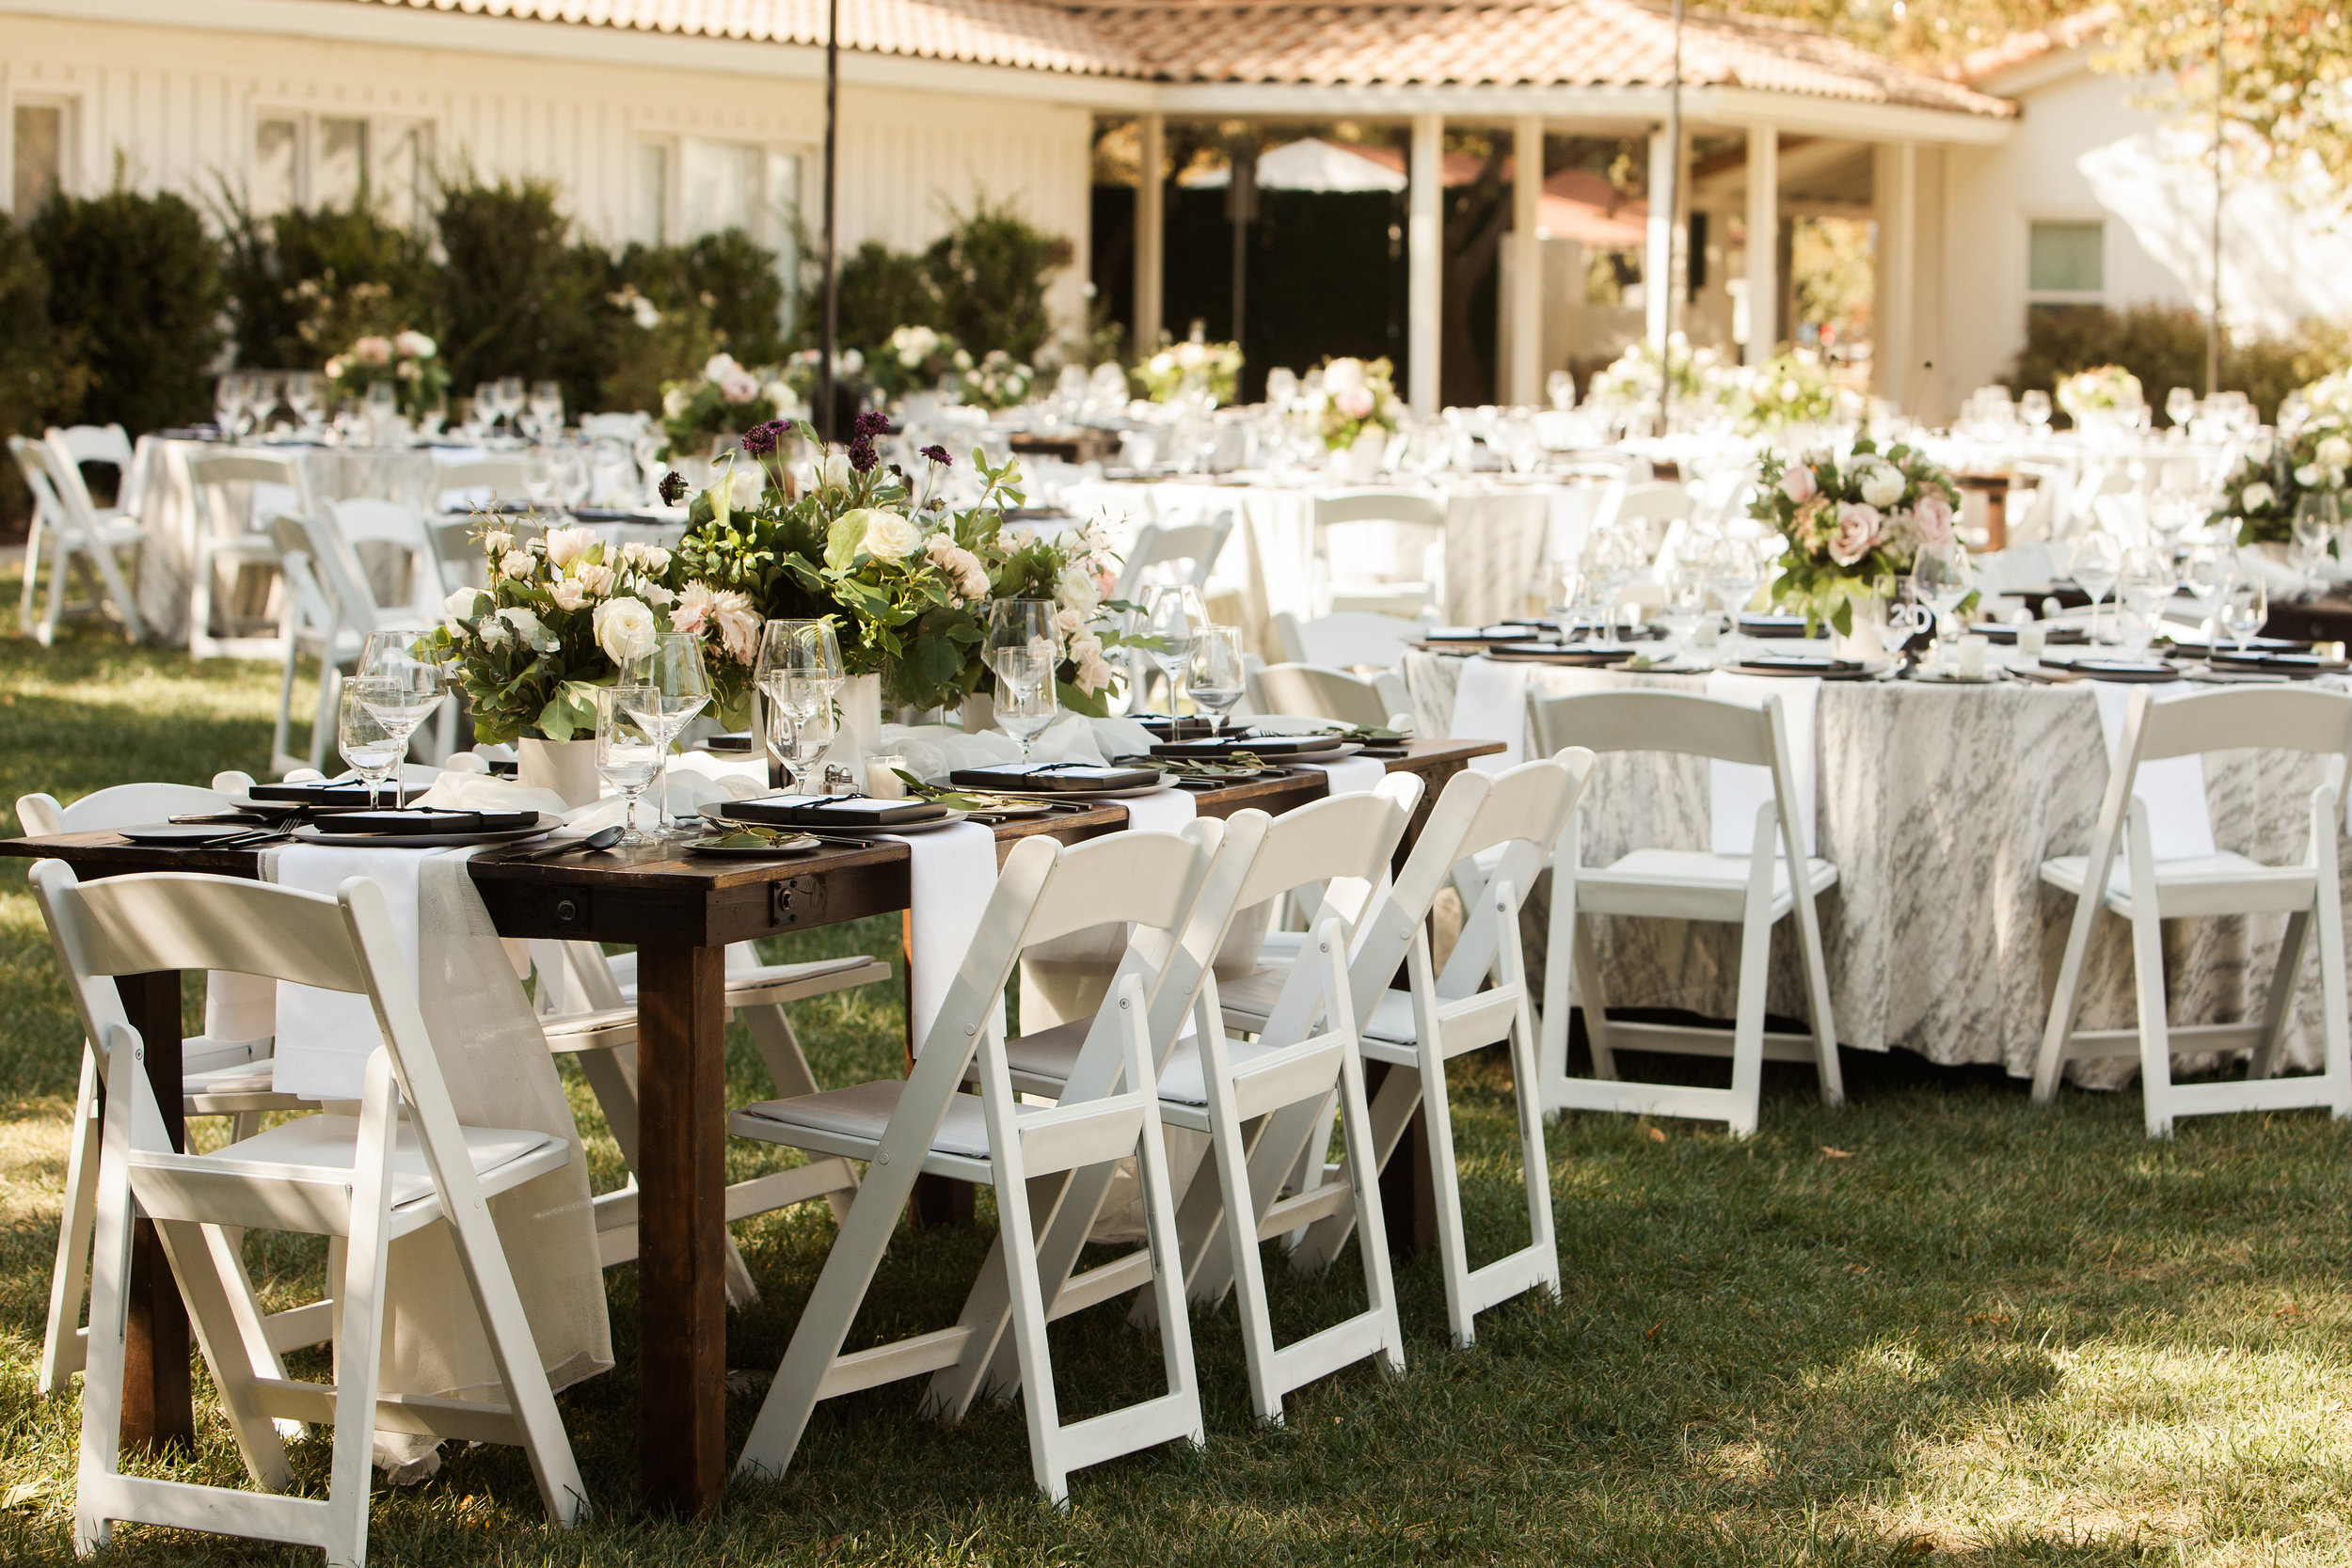 sacramento event planner corporate event planner Raley's Food for Families event The Maples